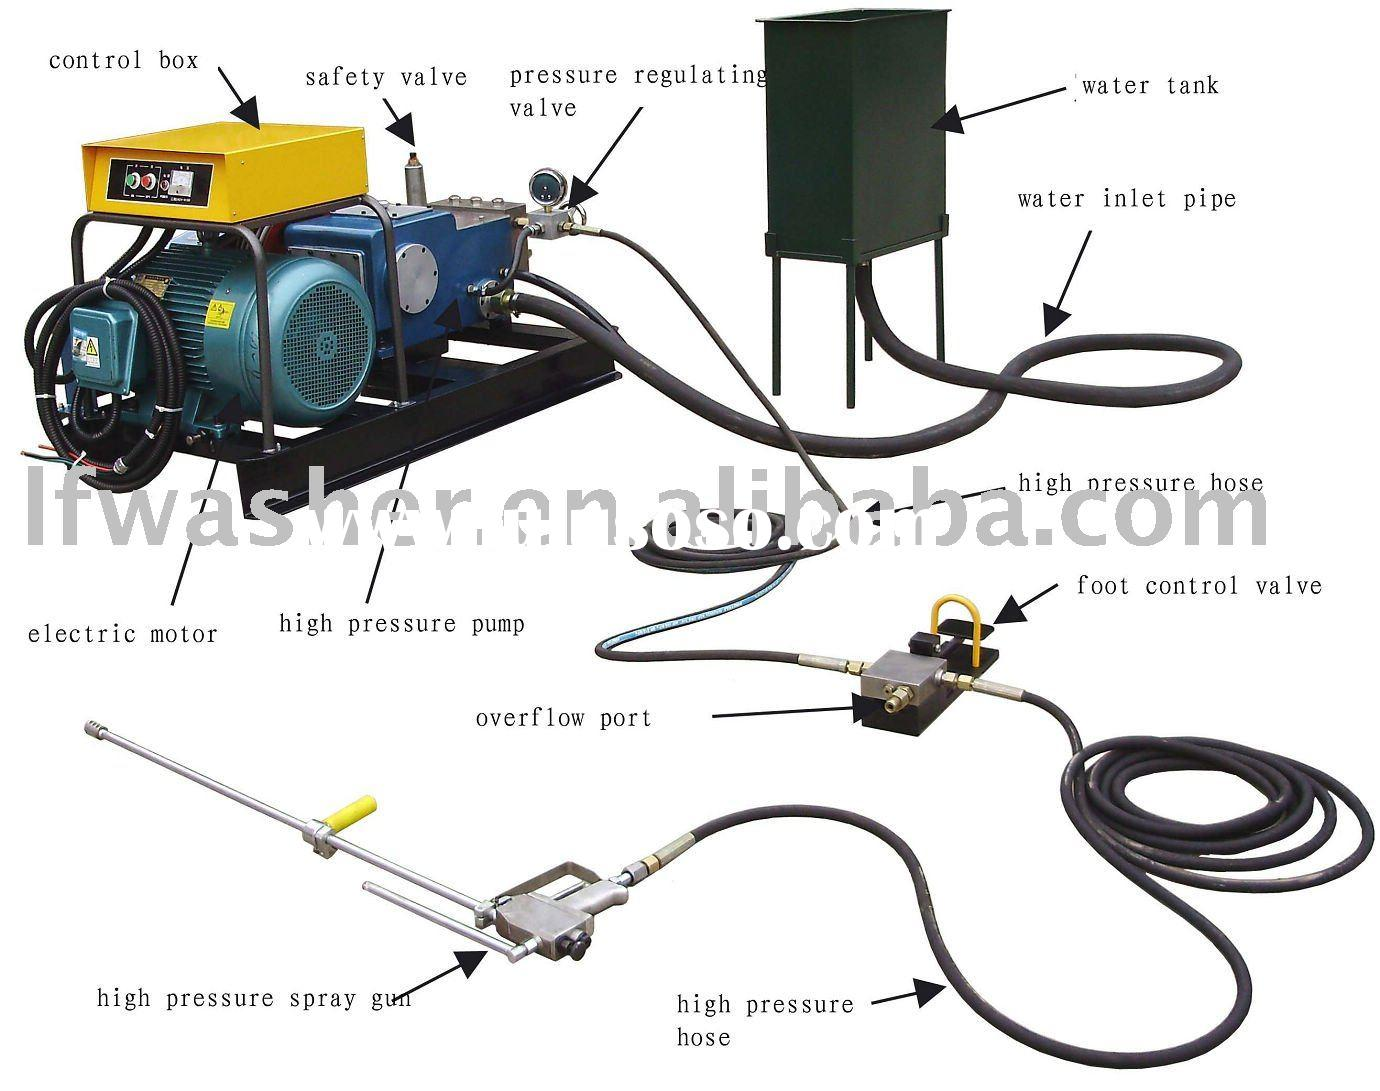 Industrial high pressure cleaning pump,drain cleaner,pipe cleaner,water jetting equipment